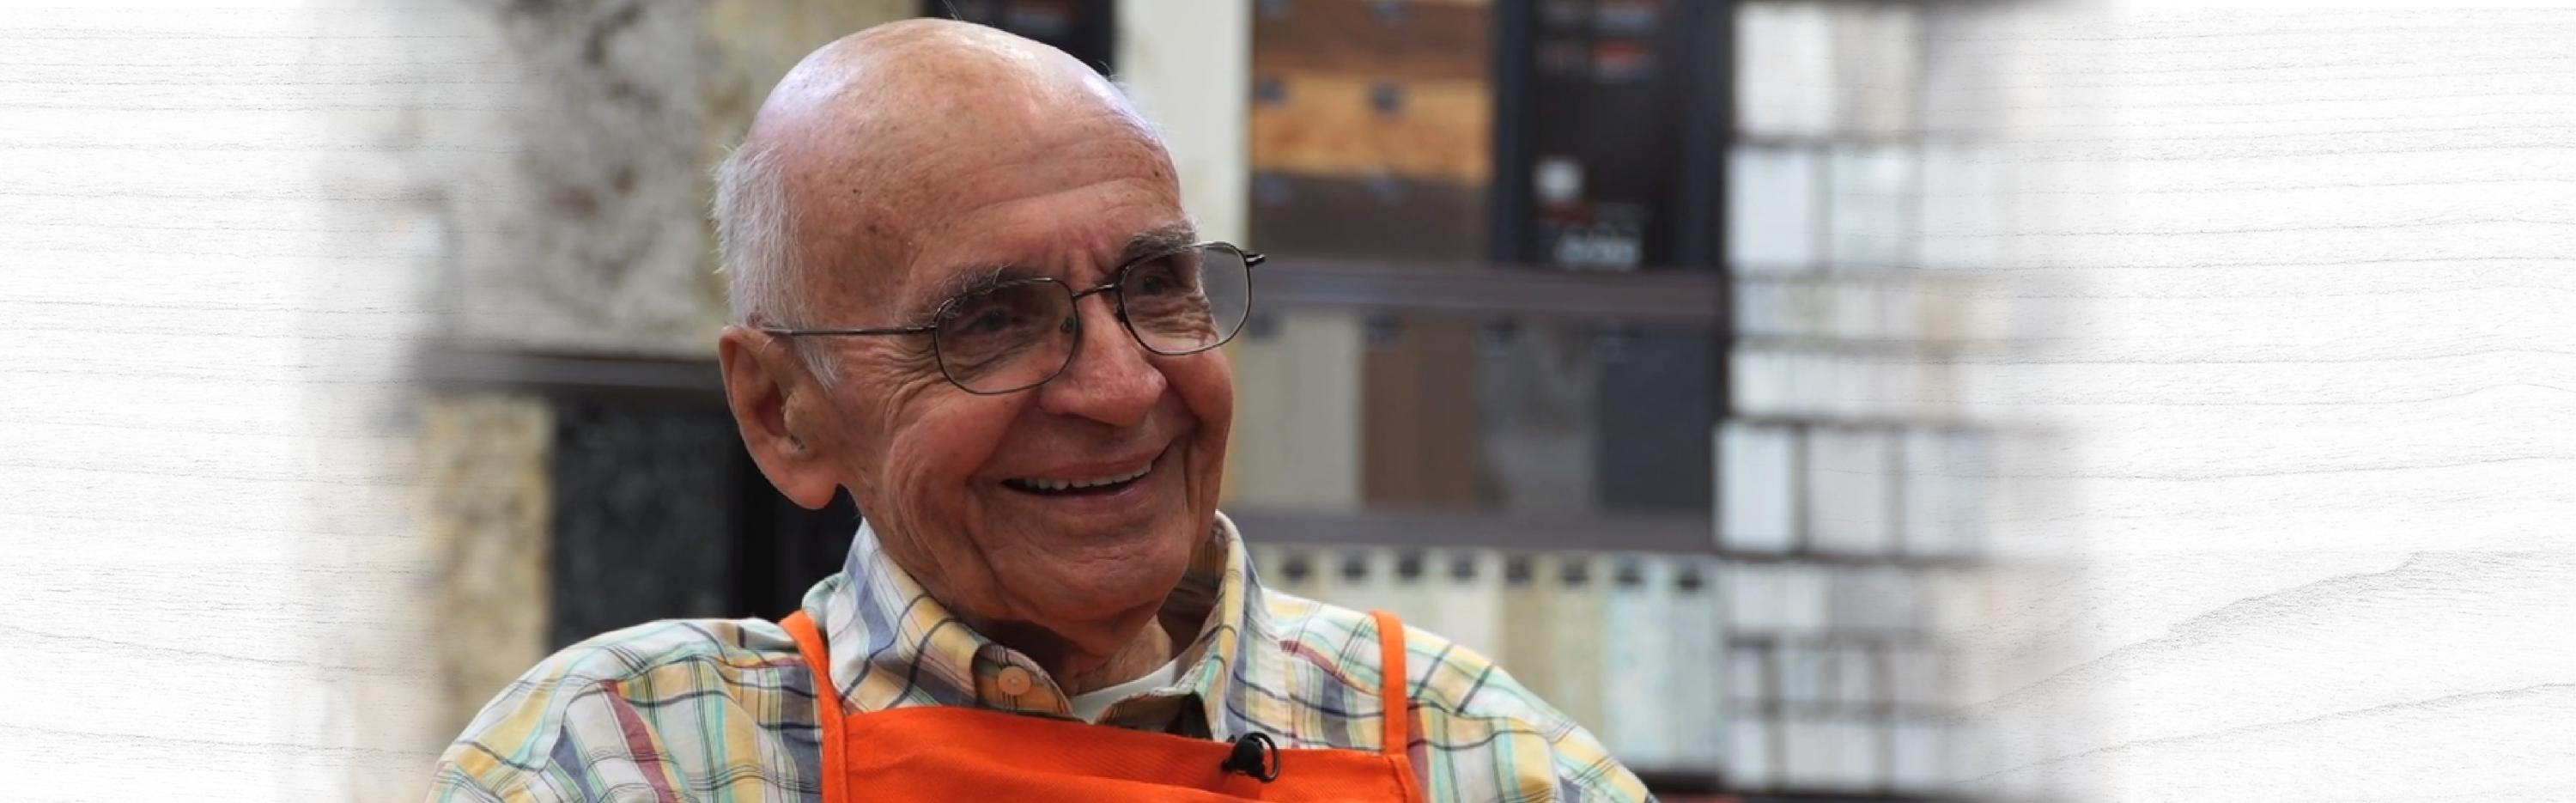 Built to Last: Home Depot Associate Shares Keys to Success at Any Age